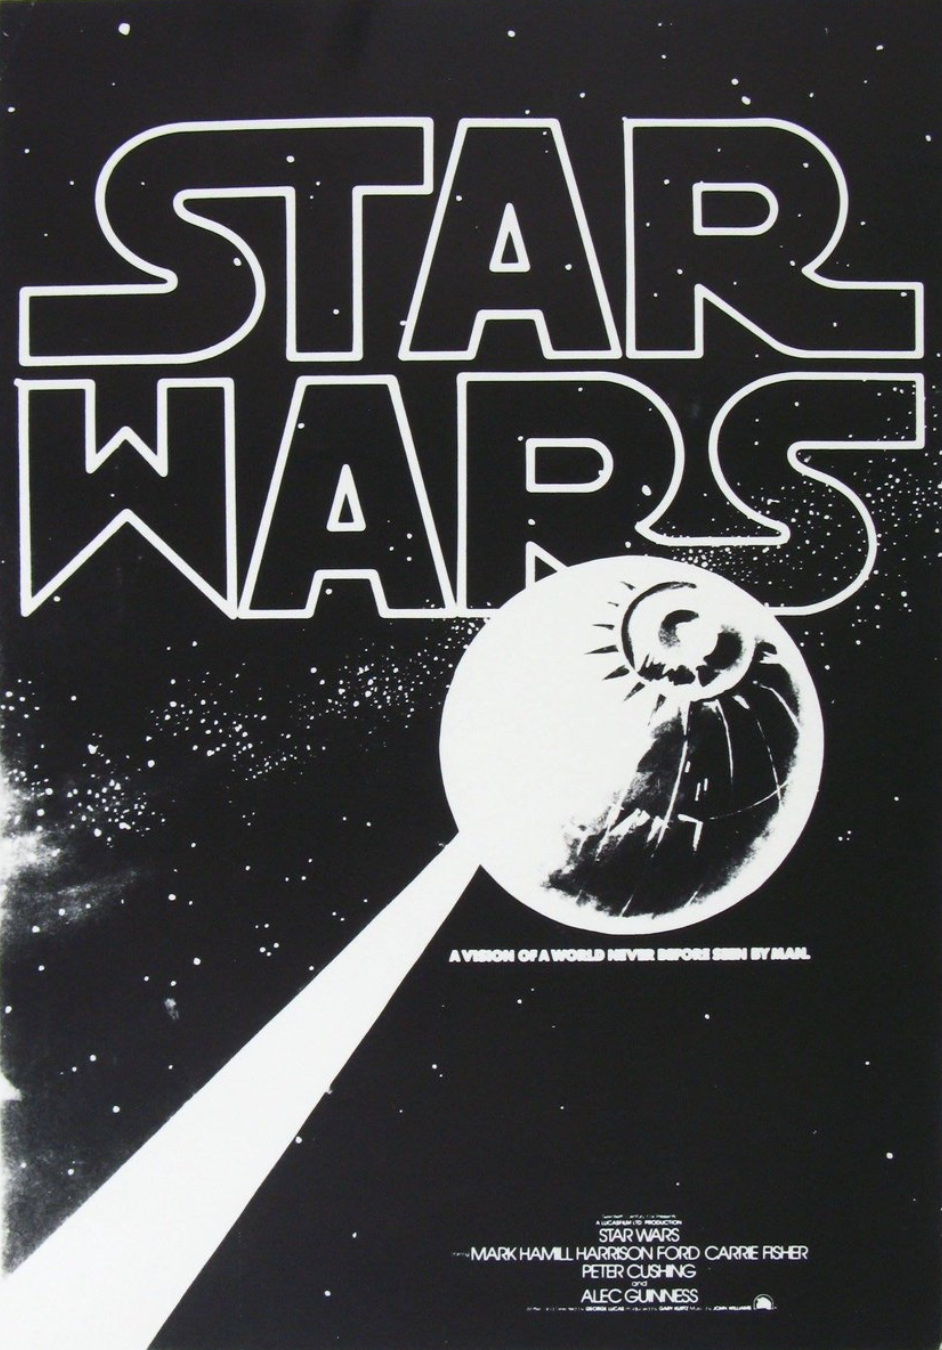 mark-hamill-shares-some-very-early-poster-concepts-for-star-wars-that-tried-to-explain-the-film4